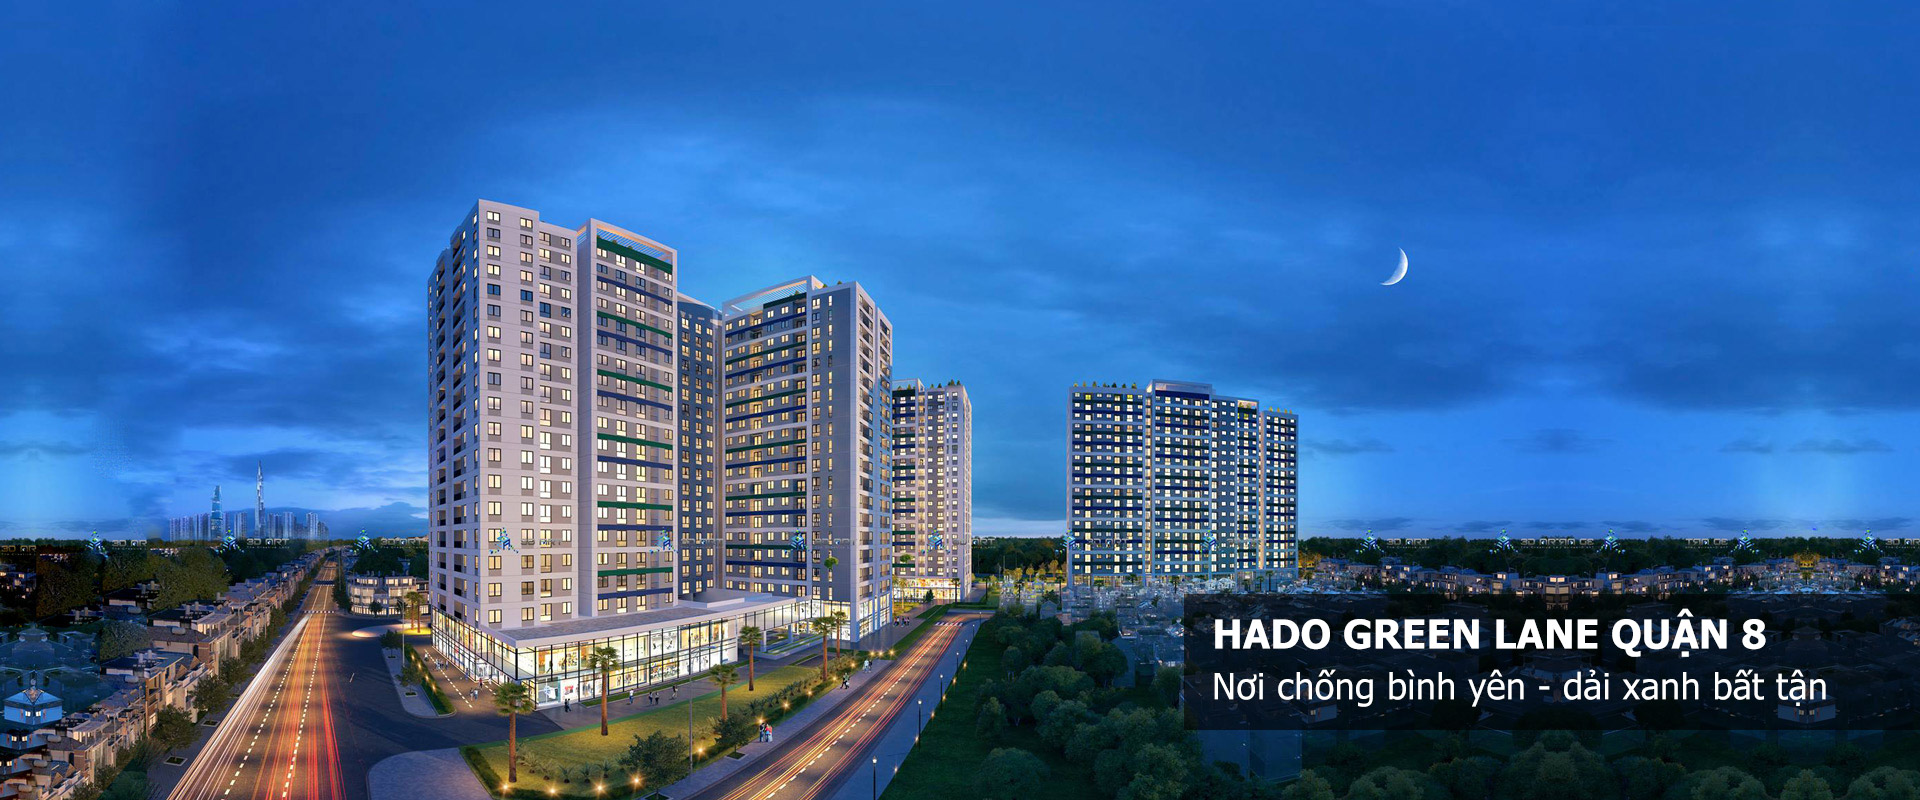 HaDo Green Lane Quận 8